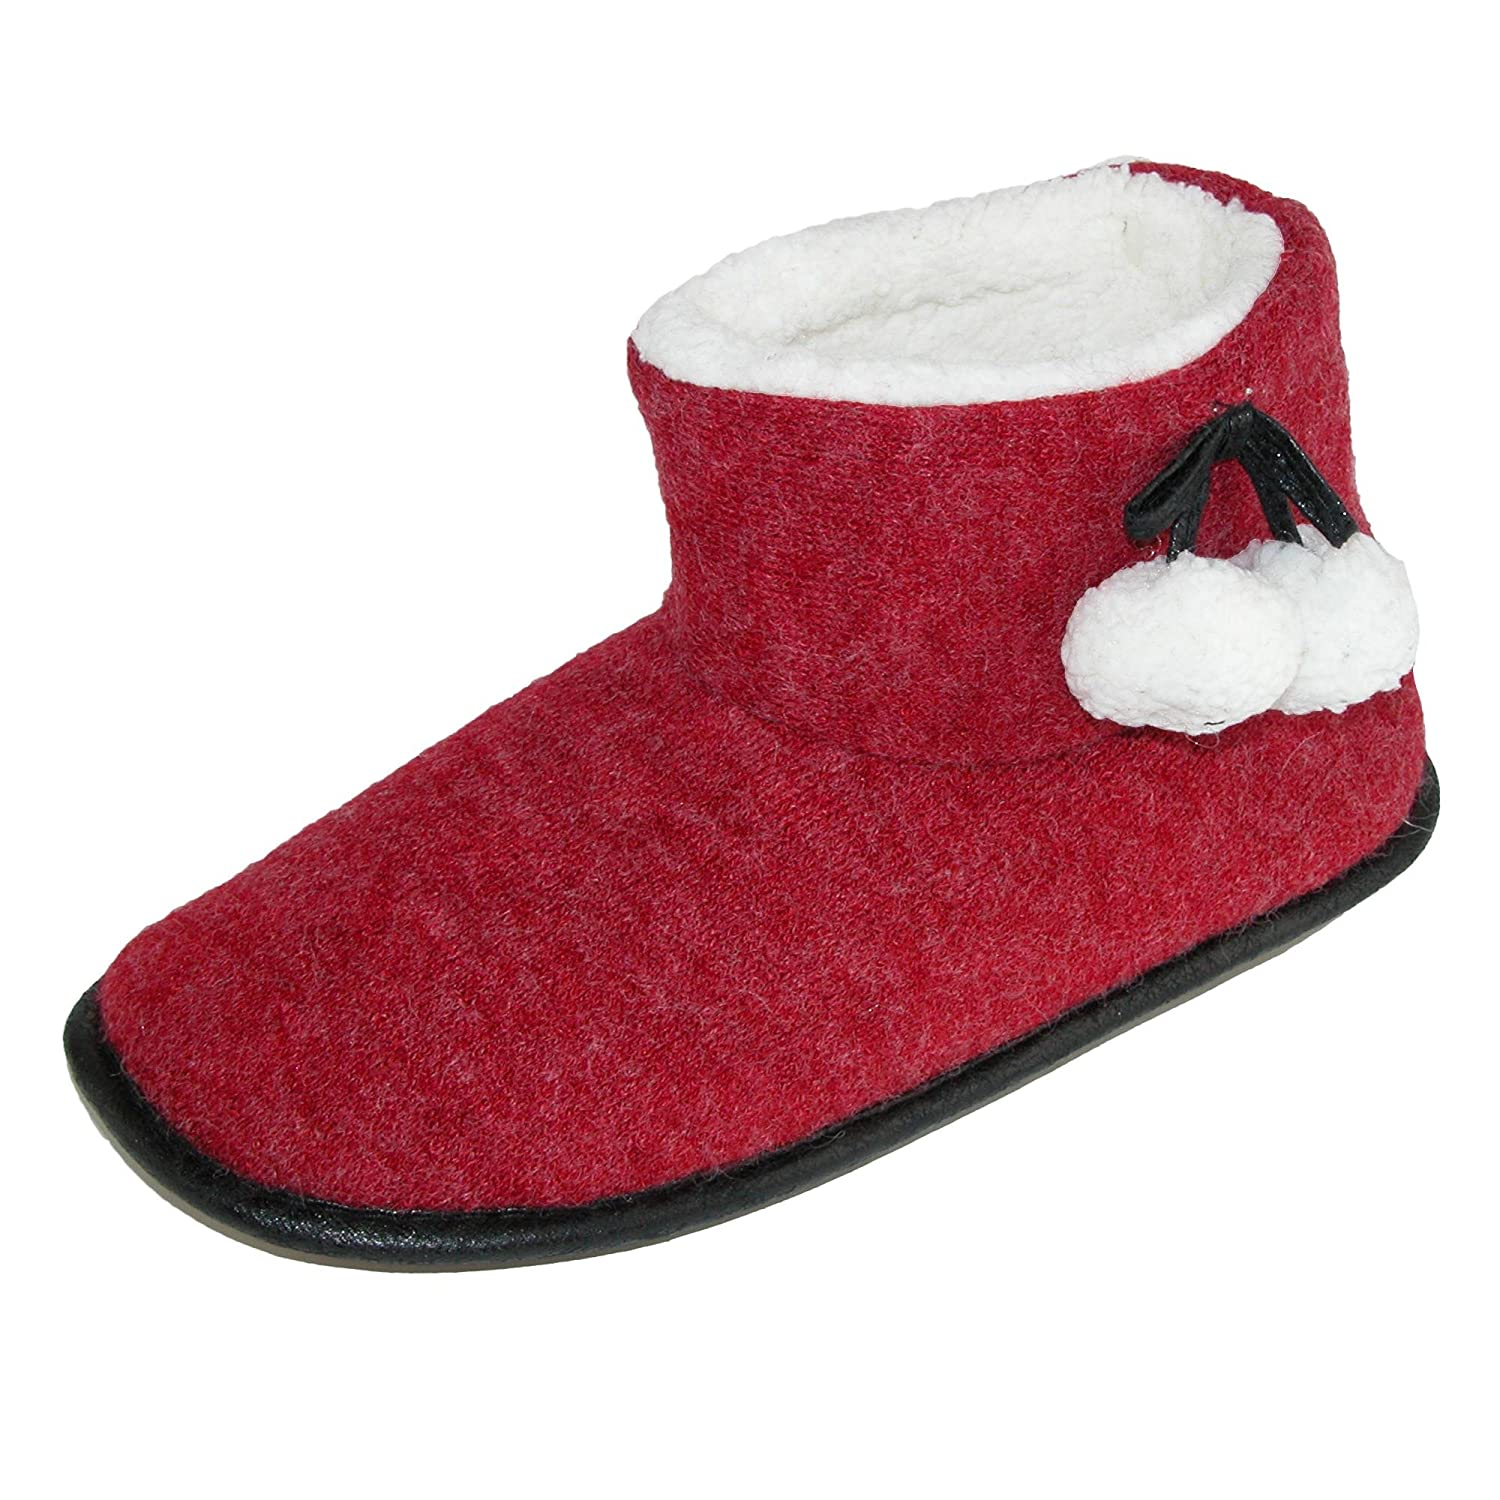 Hanes Women's Alba Heather Spiced Bootie Slipper with Pom Pom